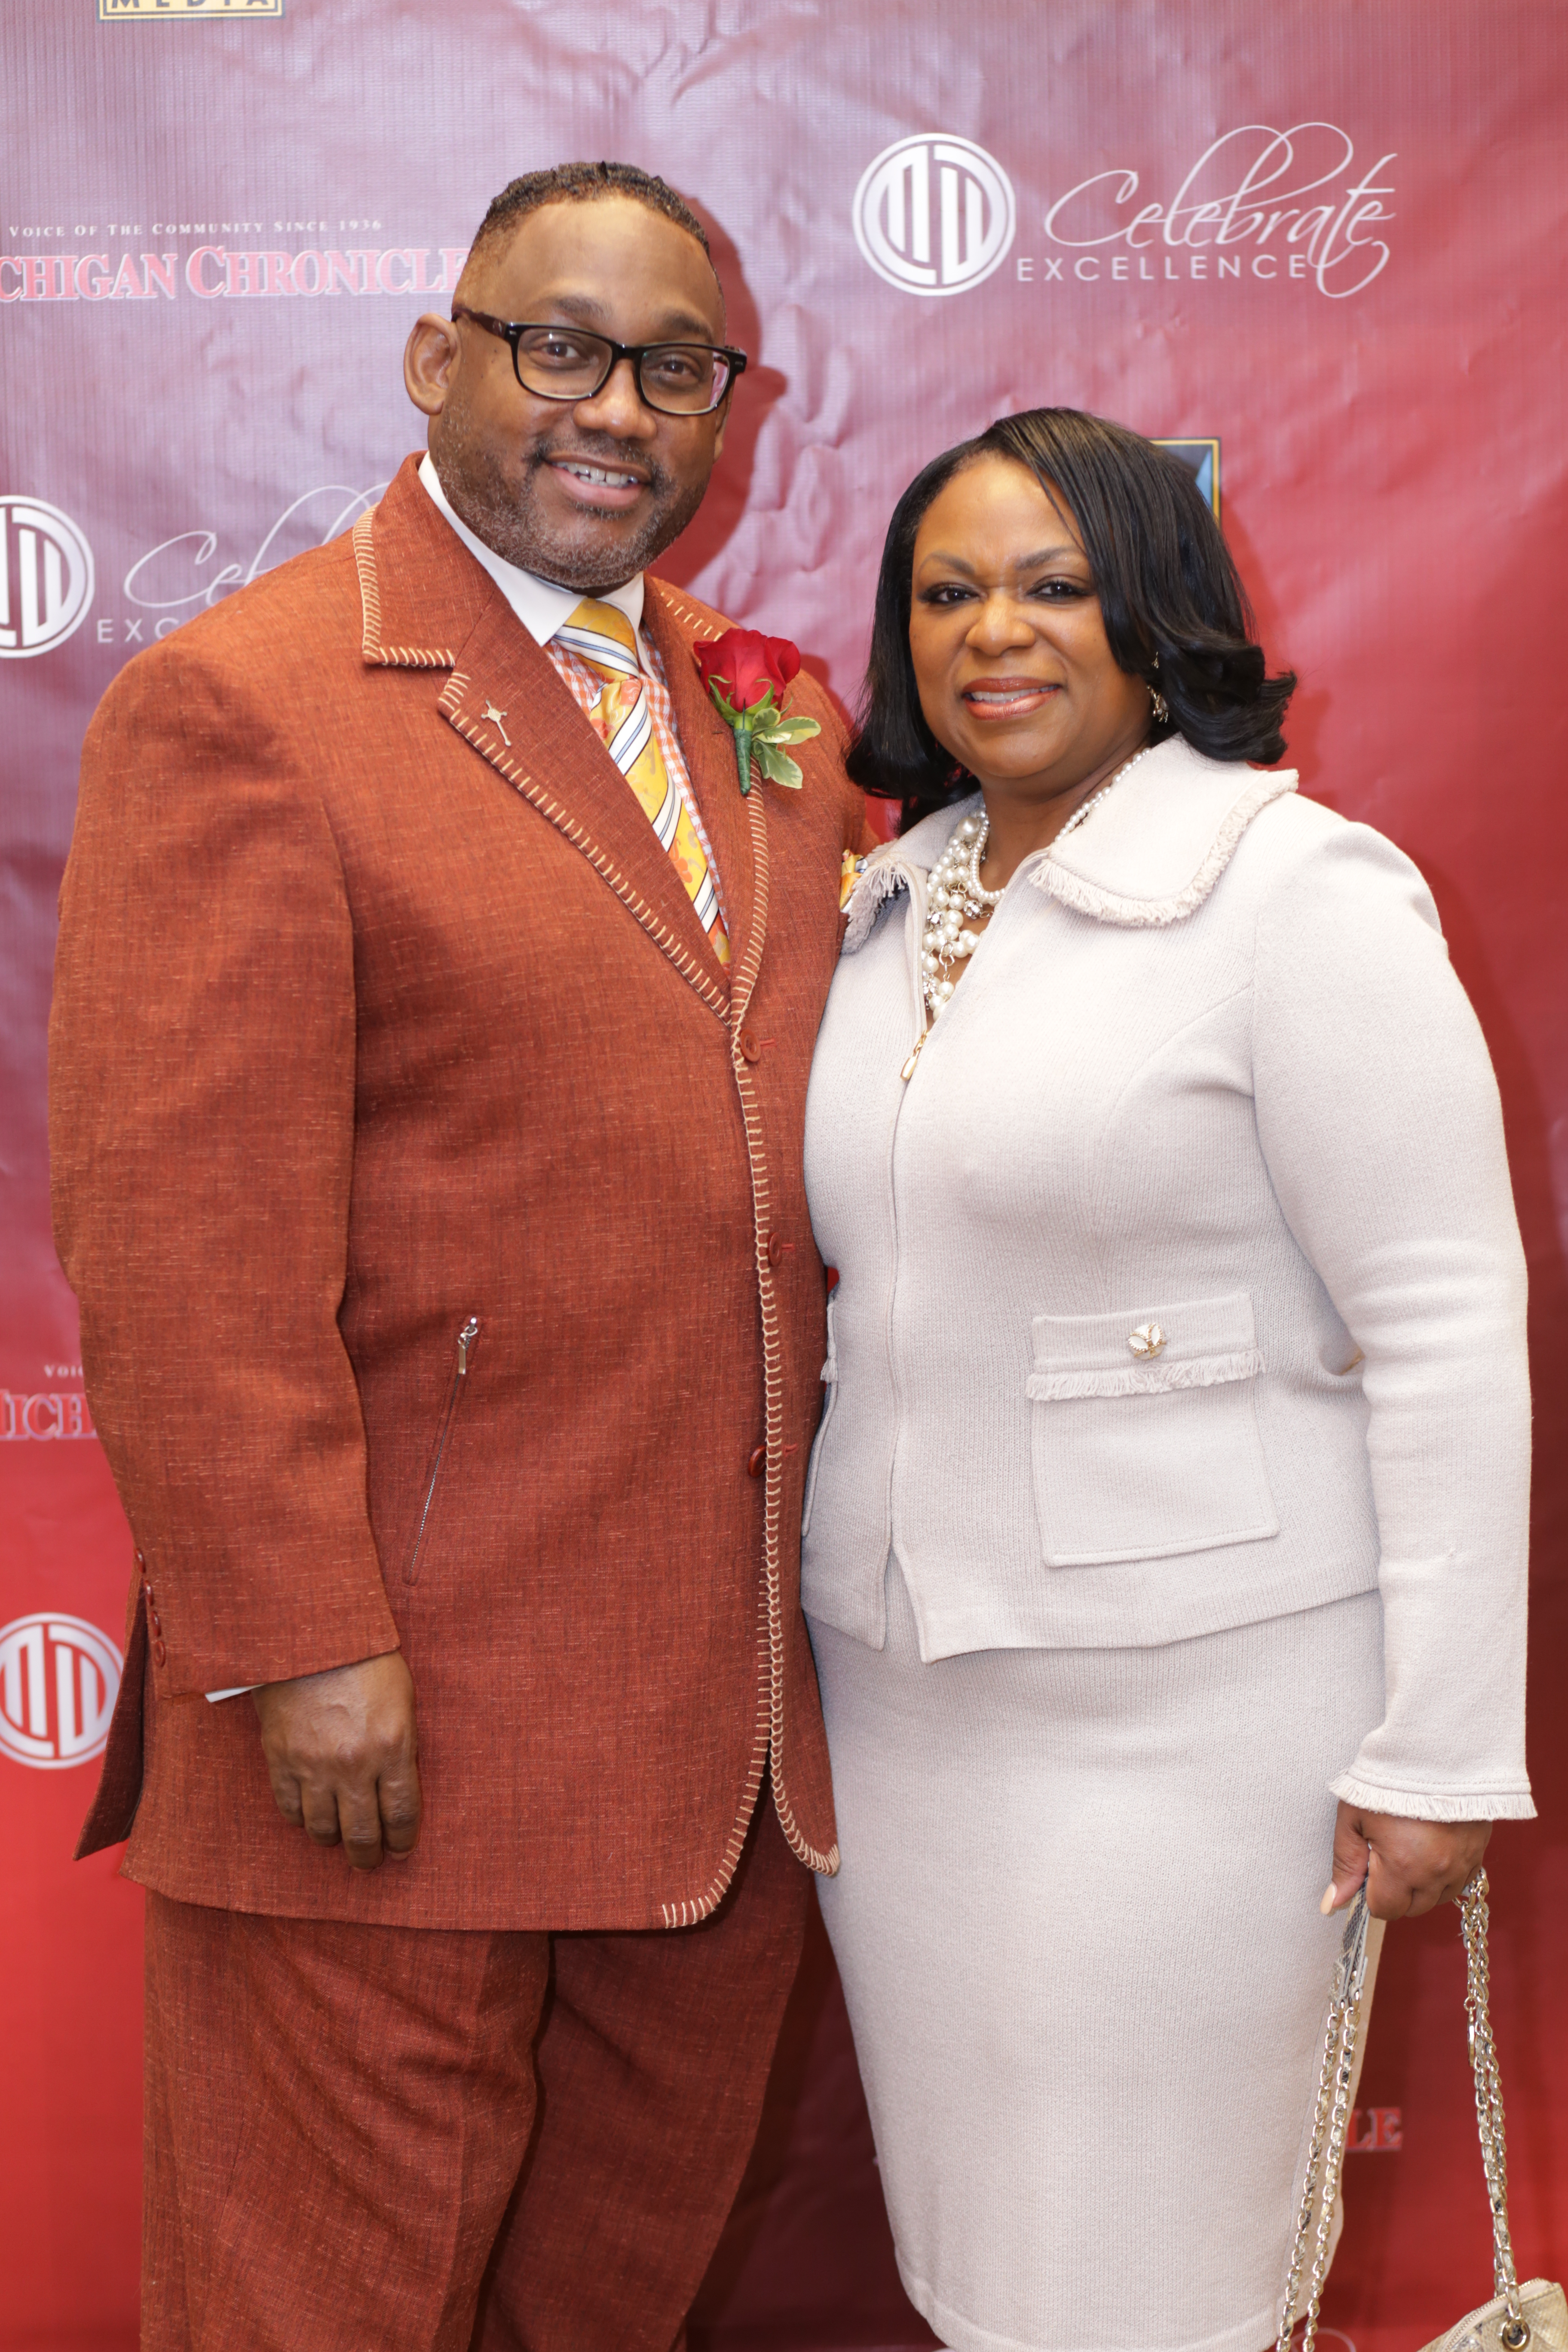 THE JAKES—Bishop T.D. Jakes and his wife, Serita Jakes, arrive on their way to the preacher's 35th Anniversary Celebration at the AT&T Winspear Opera House in Dallas. Jakes was also expected to attend a major Christian racial reconciliation conference.